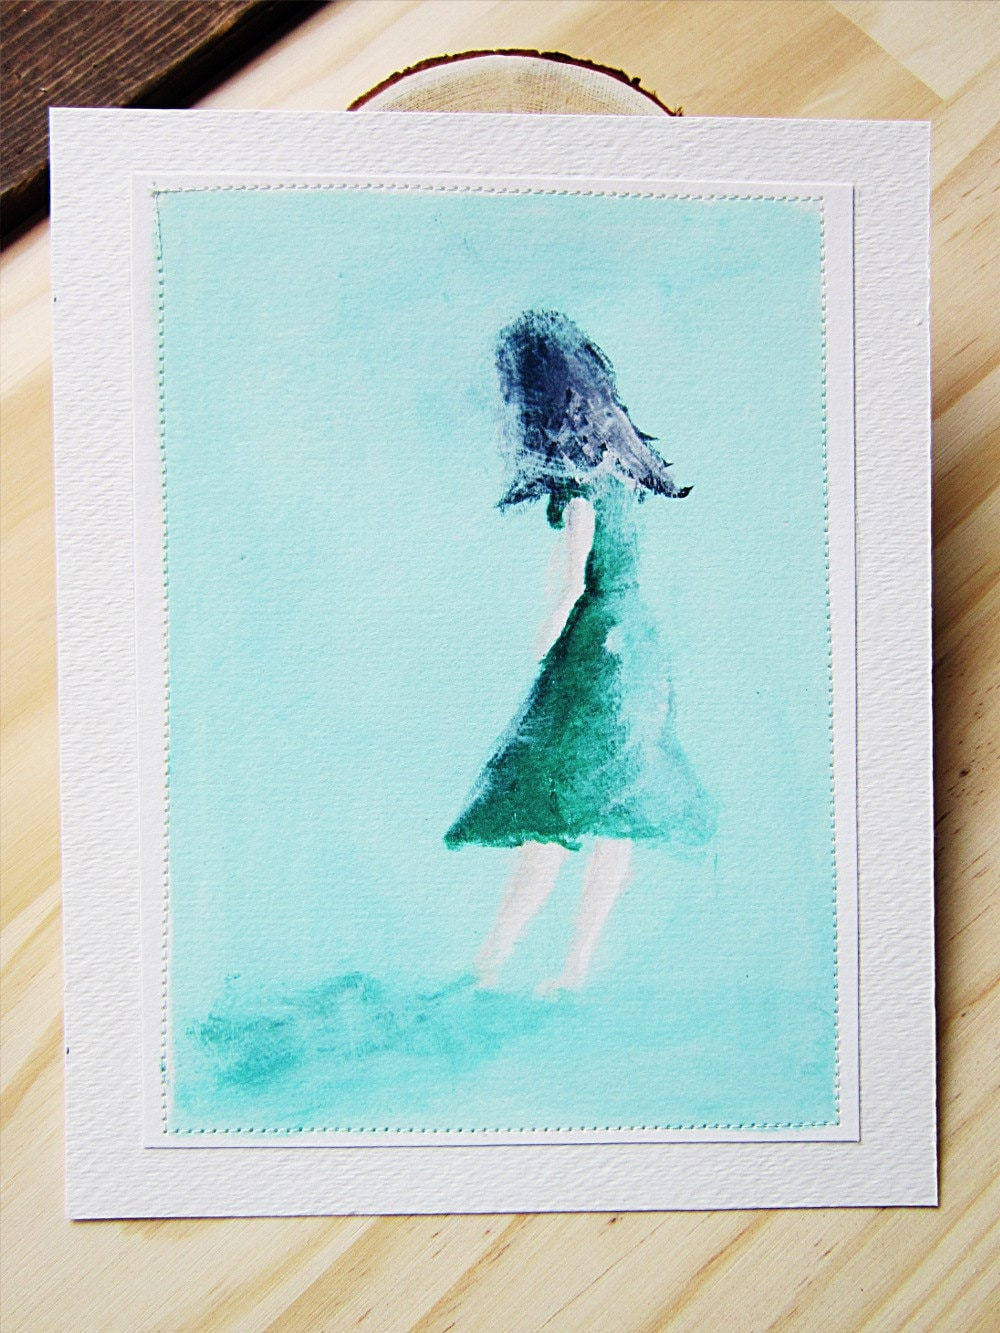 Sewn Art Print - Fall Behind, Original Painting, Pastel colors, Mint Green, Green Dress, Lady in Green - thelittlehappygoose